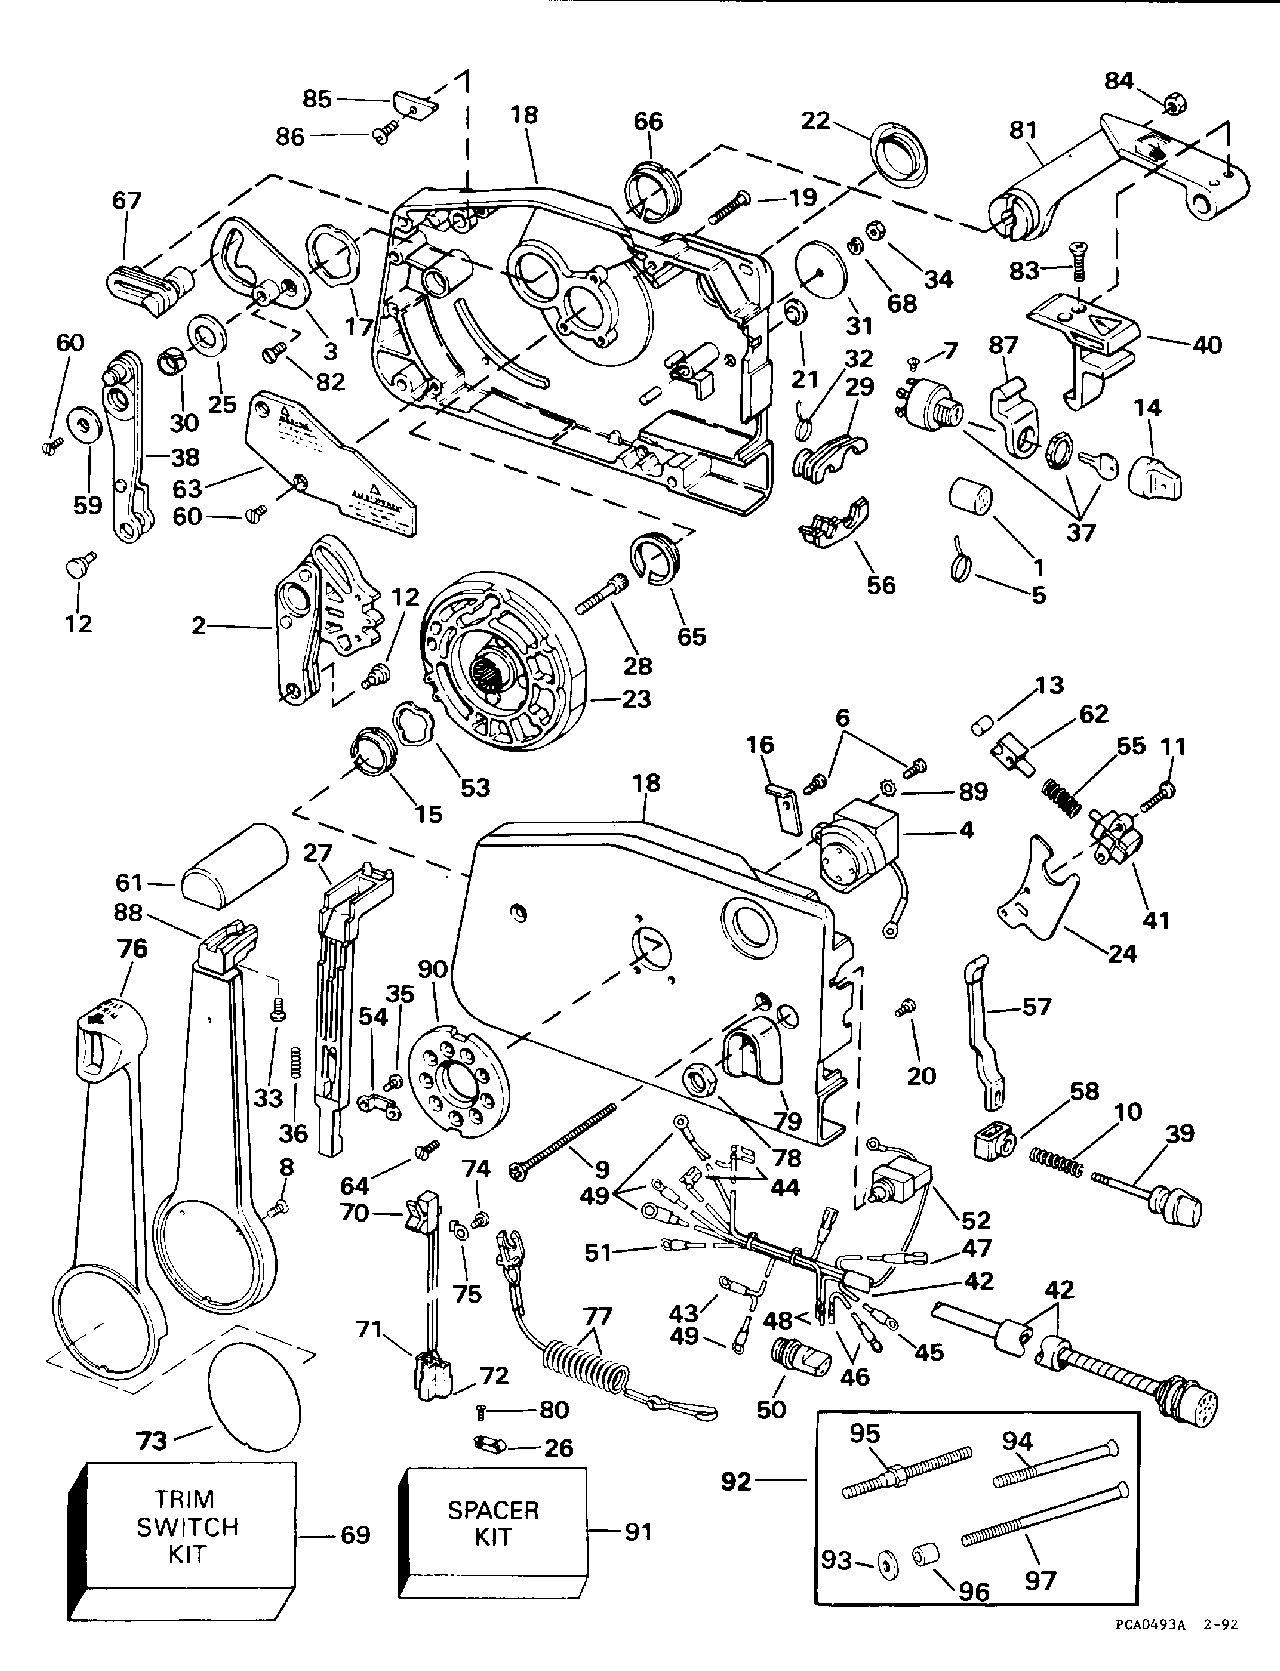 Nissan Sentra Fuse Box Layout. Nissan. Wiring Diagram Images